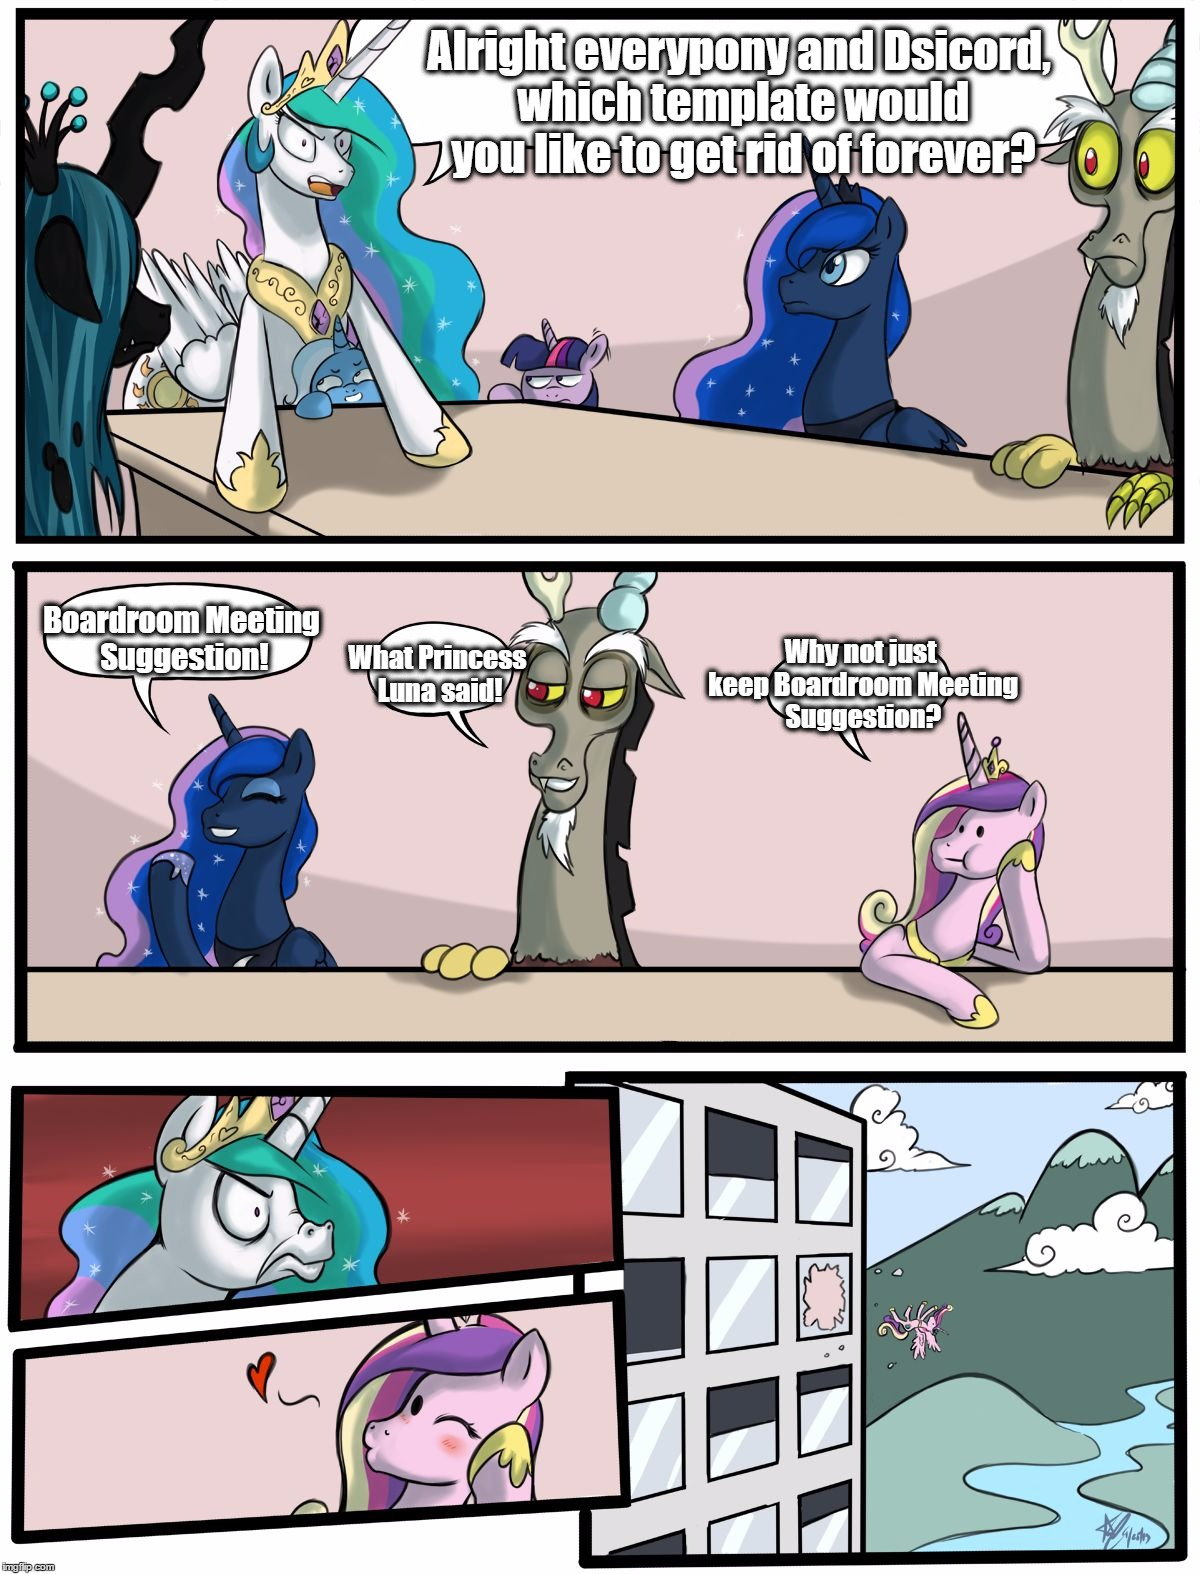 Boardroom Meeting Suggestion Pony Version | Alright everypony and Dsicord, which template would you like to get rid of forever? Boardroom Meeting Suggestion! What Princess Luna said! W | image tagged in boardroom meeting suggestion pony version | made w/ Imgflip meme maker